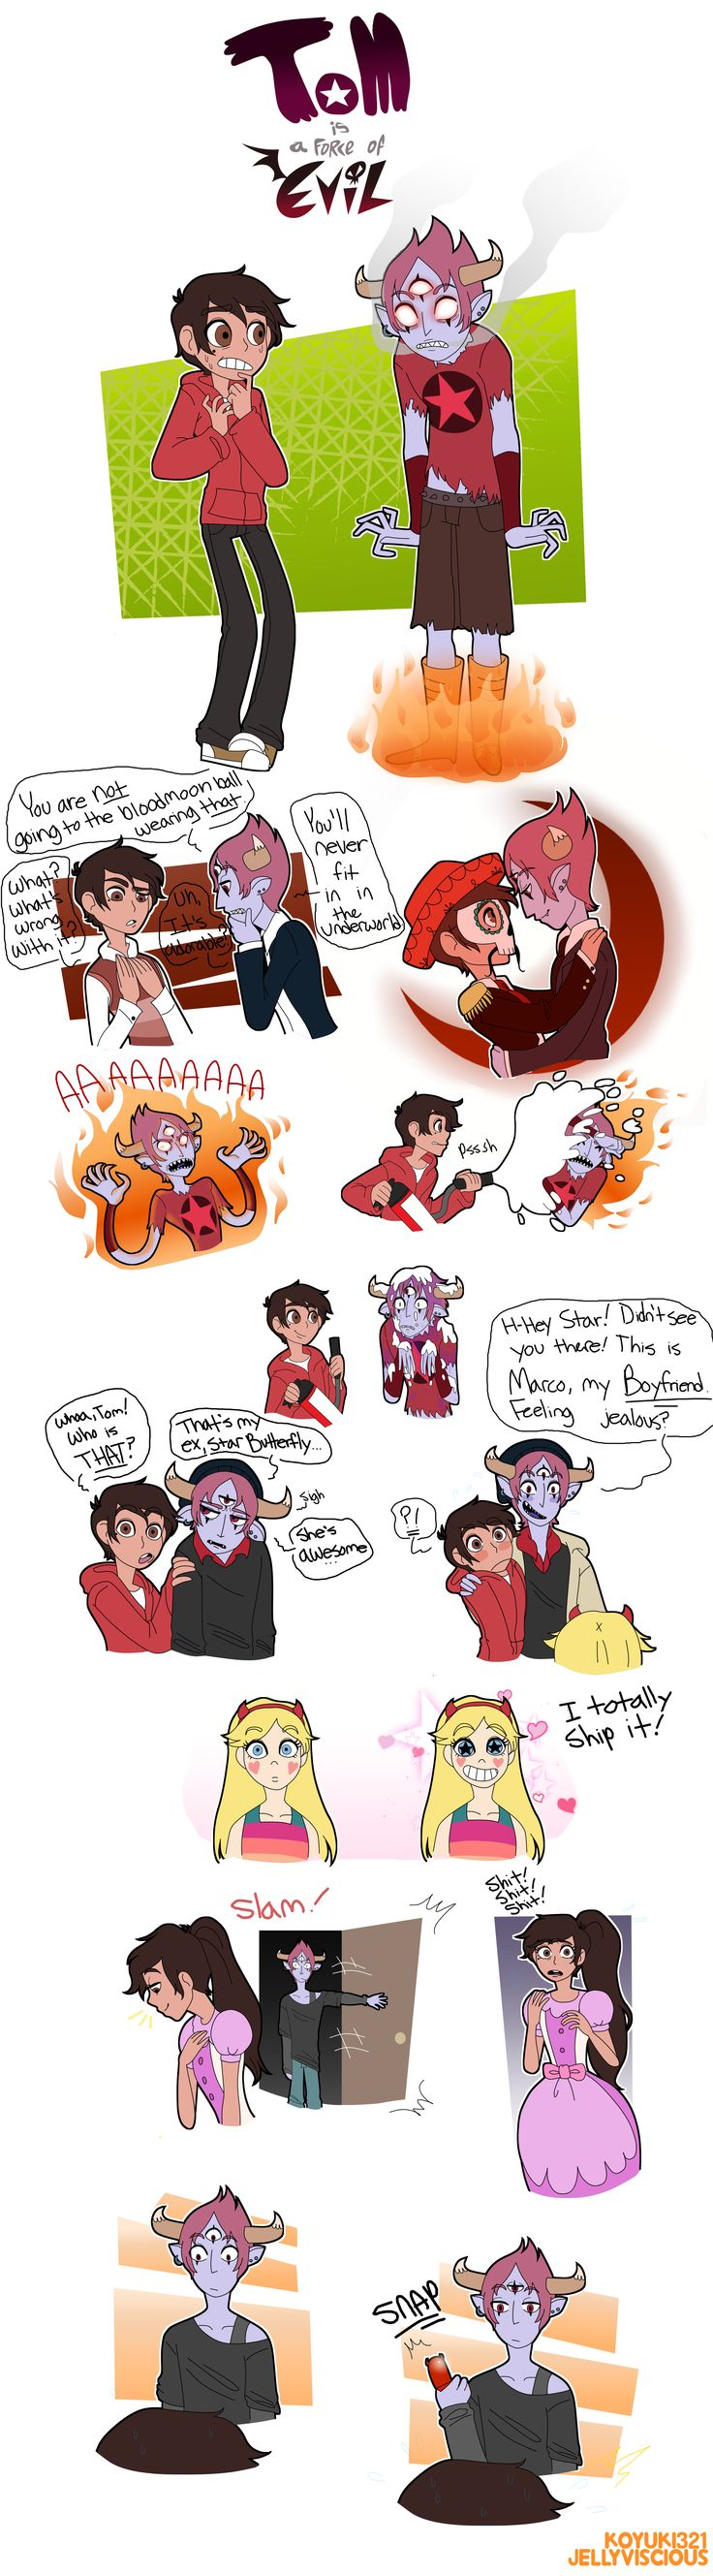 An au where Tom is the exchange student from another dimension that's staying with Marco. Everything is the same except Tom takes Star's role, and they get into crazy adventures. Instead of calling it Tom vs. the Forces of Evil, I thought it would be fitting to call the au Tom is a Force of Evil. Because he's a demon, get it?  http://img00.deviantart.net/ba1e/i/2016/224/d/4/tom_is_one_of_the_forces_of_evil_by_koyuki321-dadl1v9.png